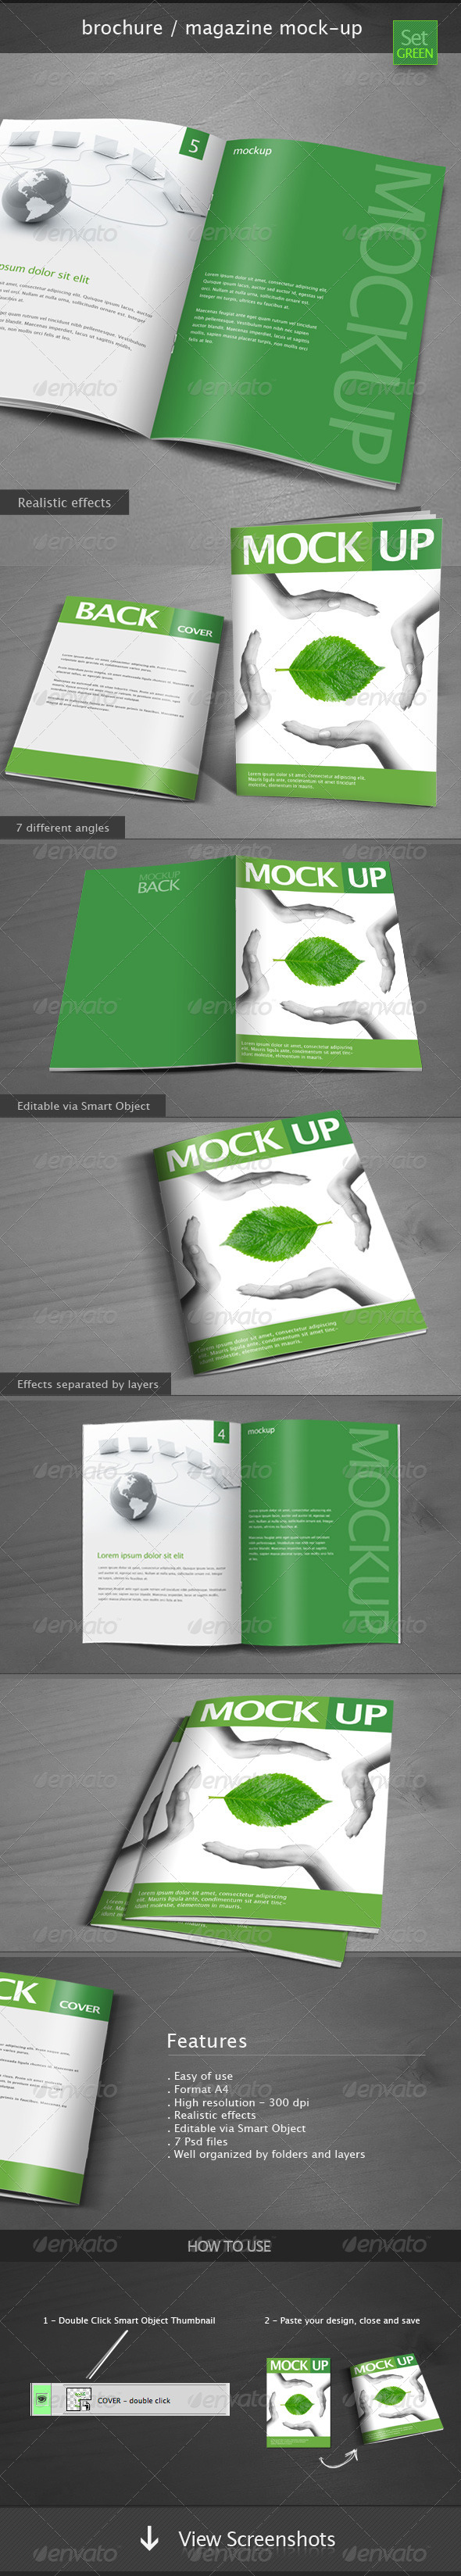 Brochure / Magazine Mock-up Set Green - Brochures Print